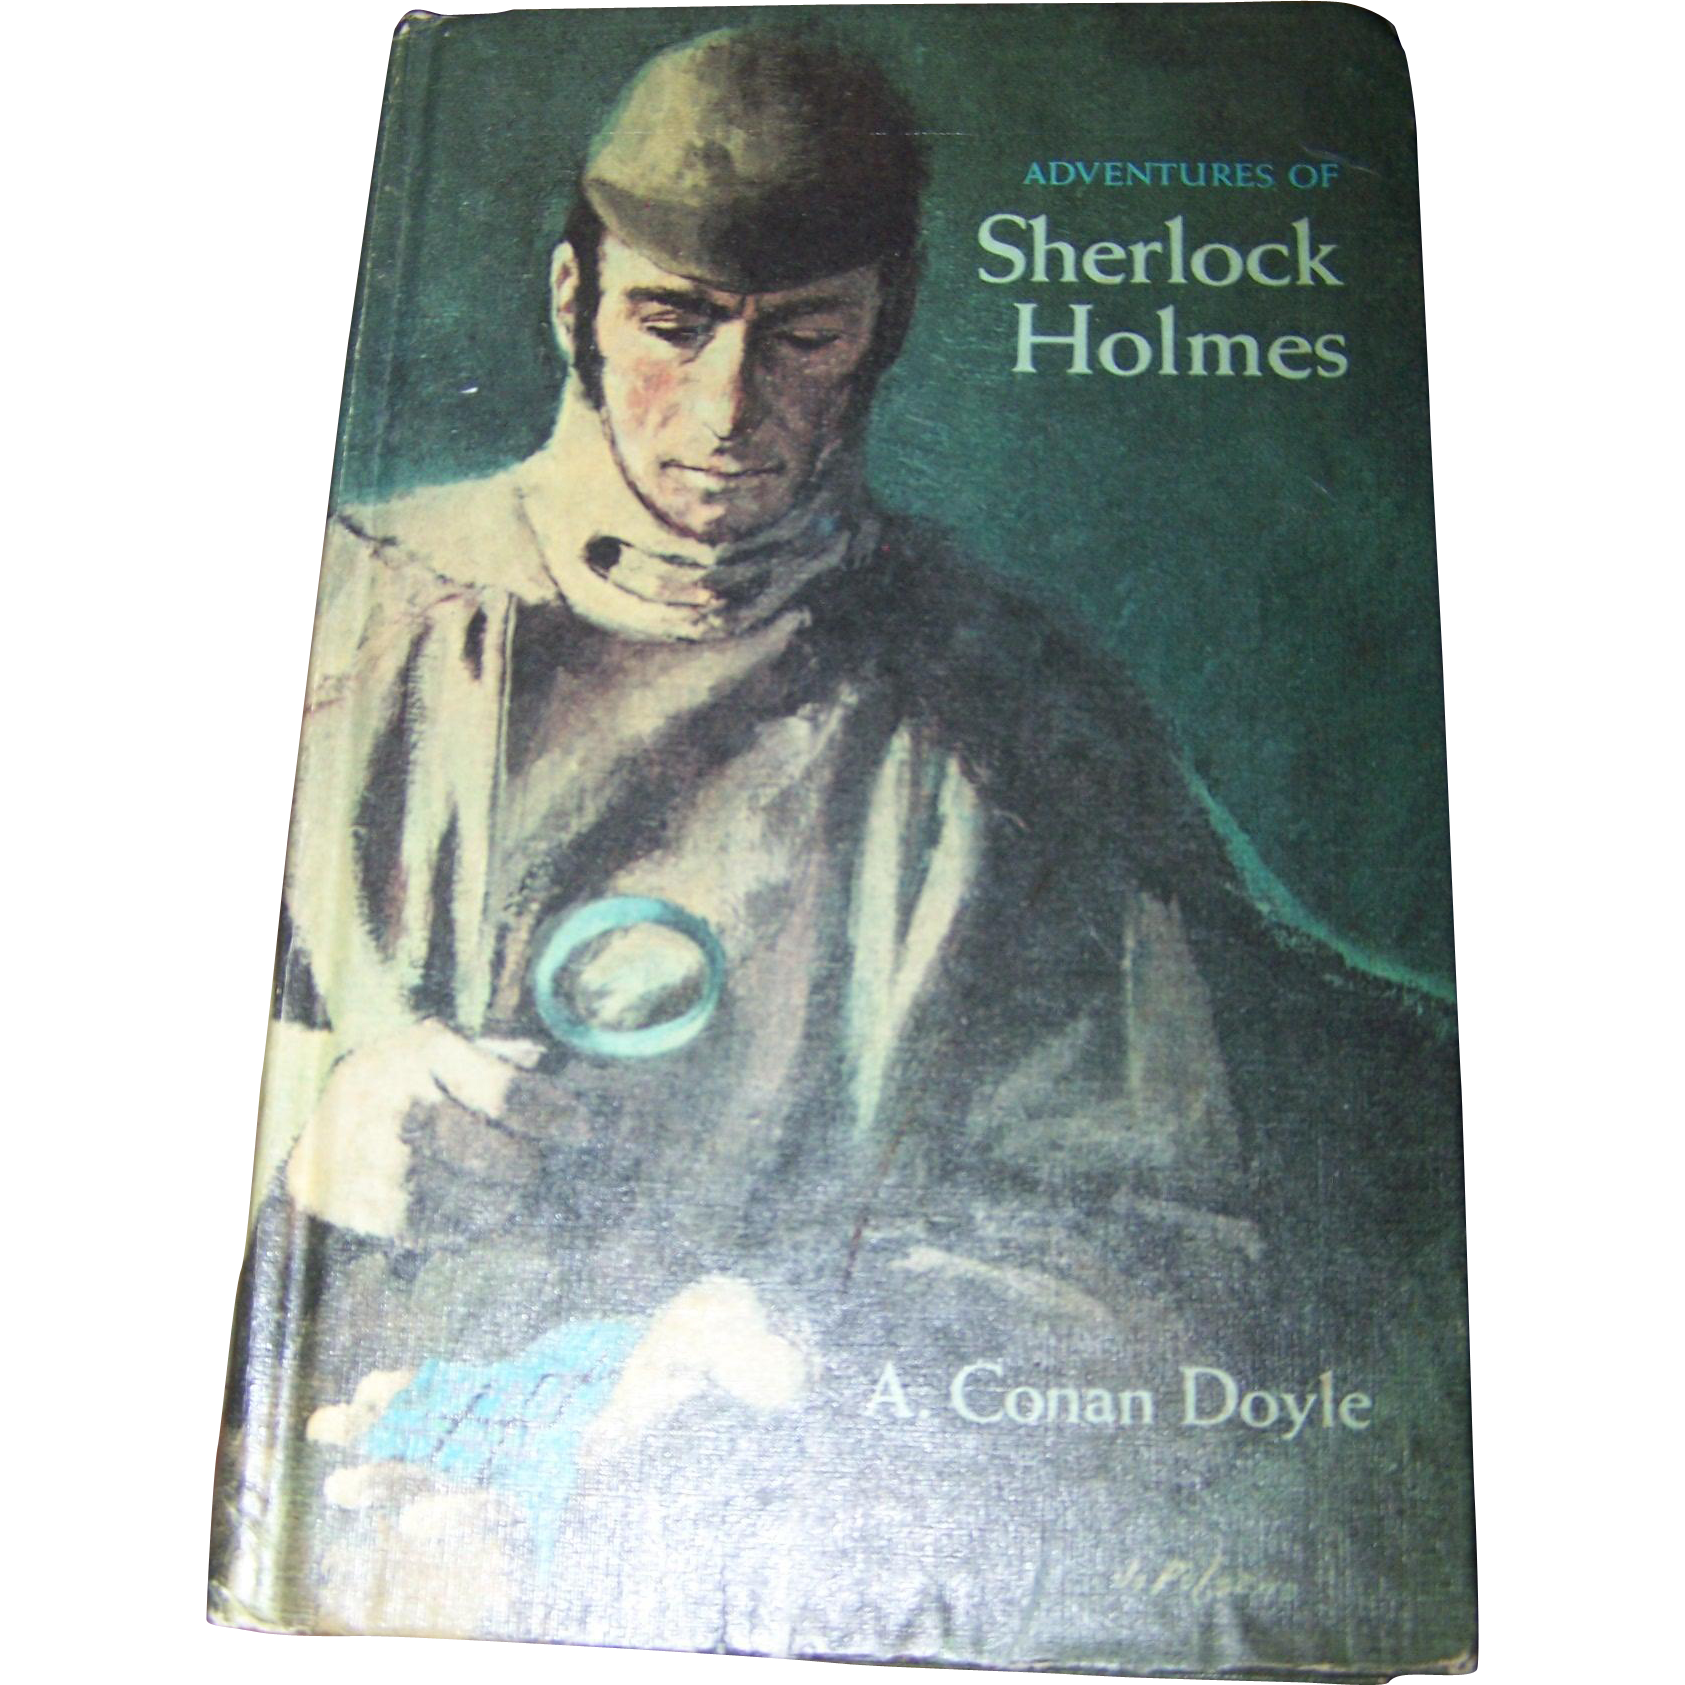 The Adventures of Sherlock Holmes A. Conan Doyle Hard Cover Book